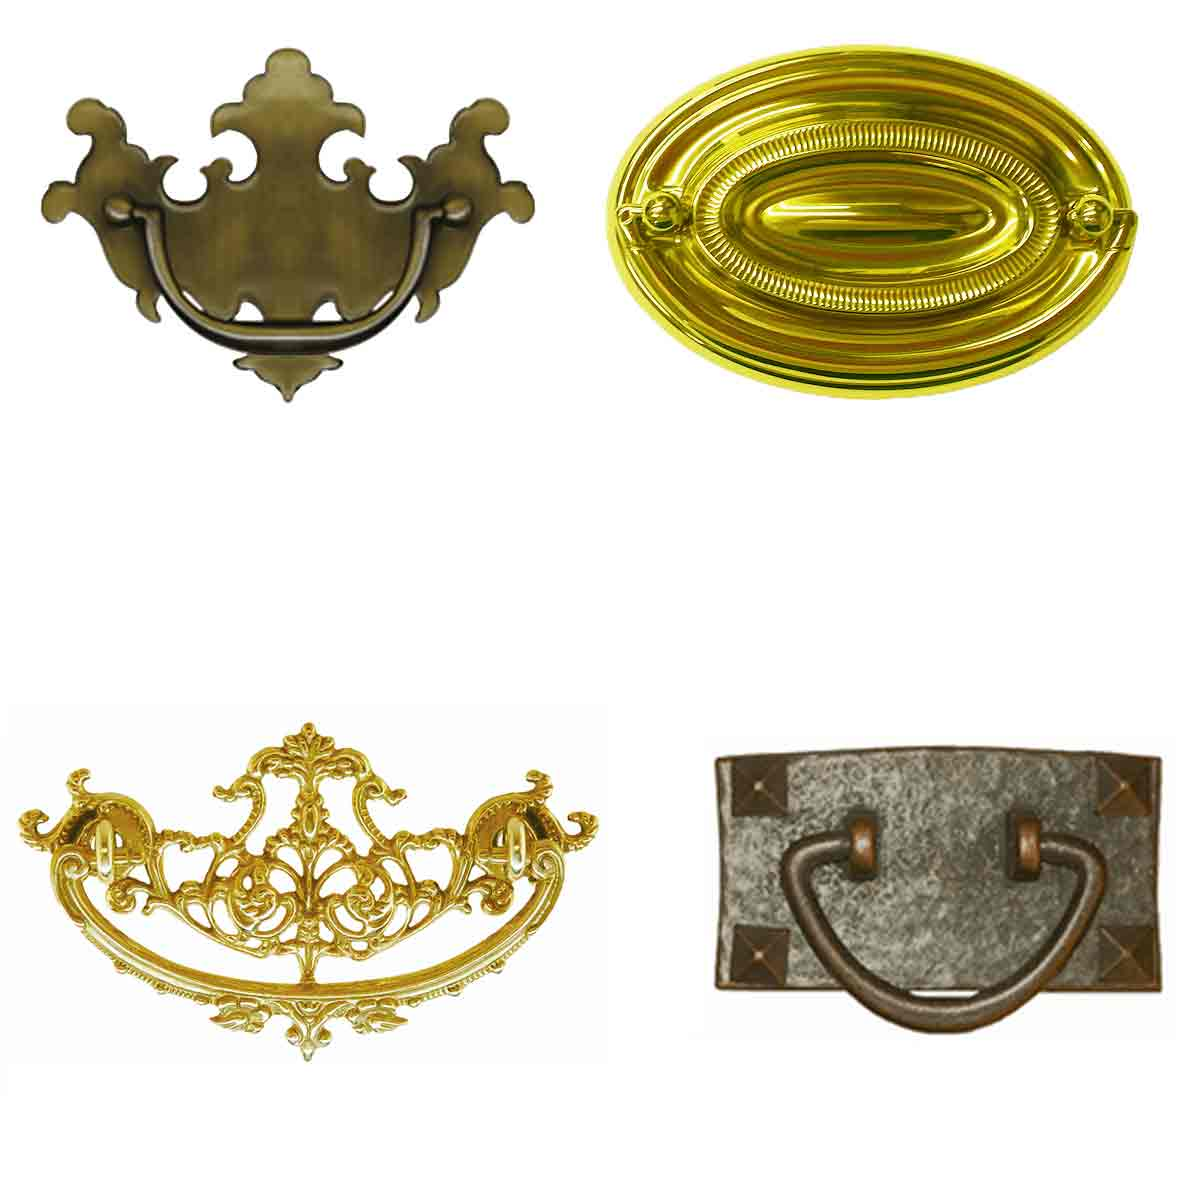 Antique Drawer Pulls, many patterns, sizes and finishes